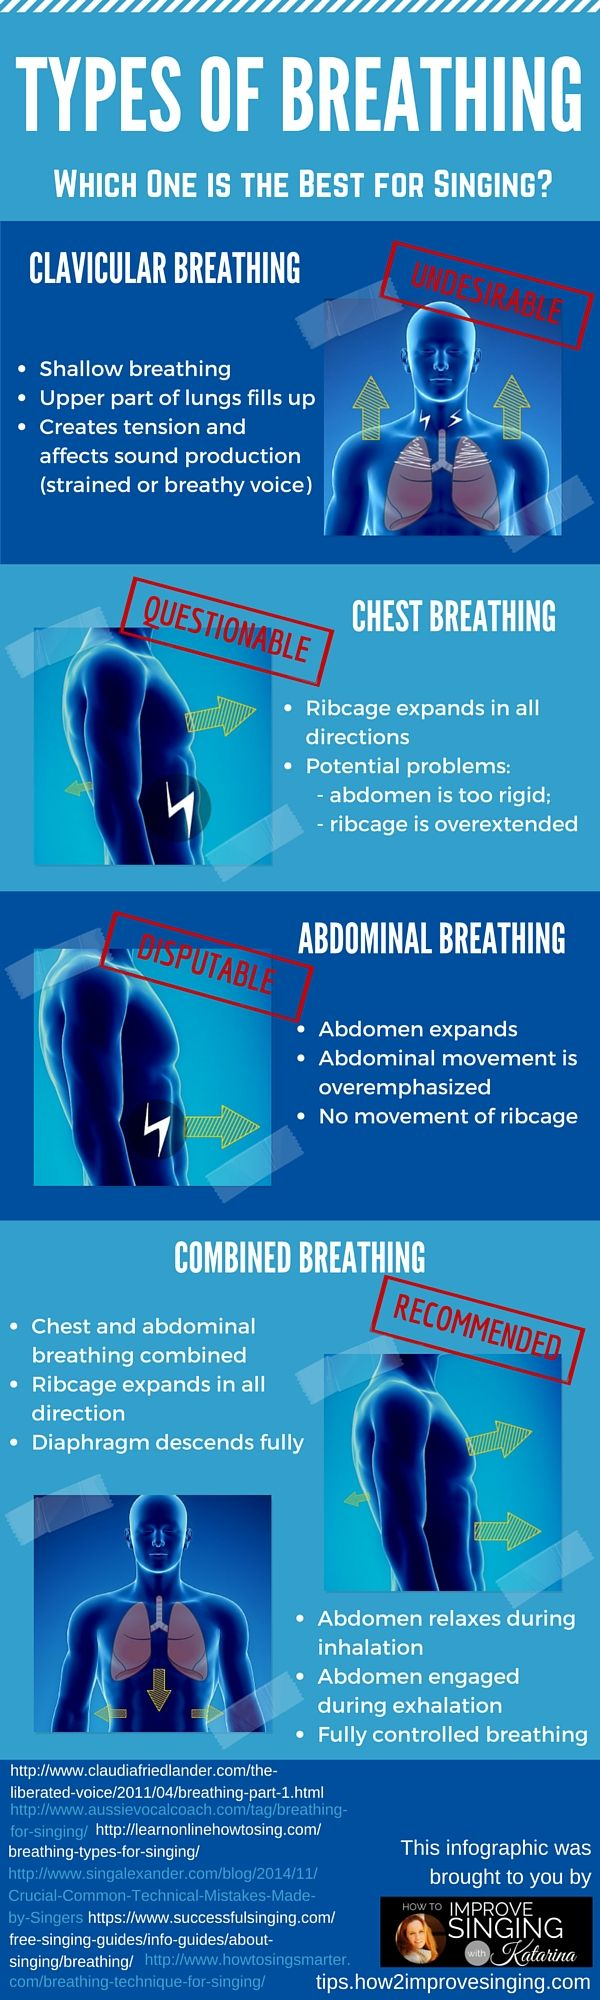 breathing for singing: types of breathing